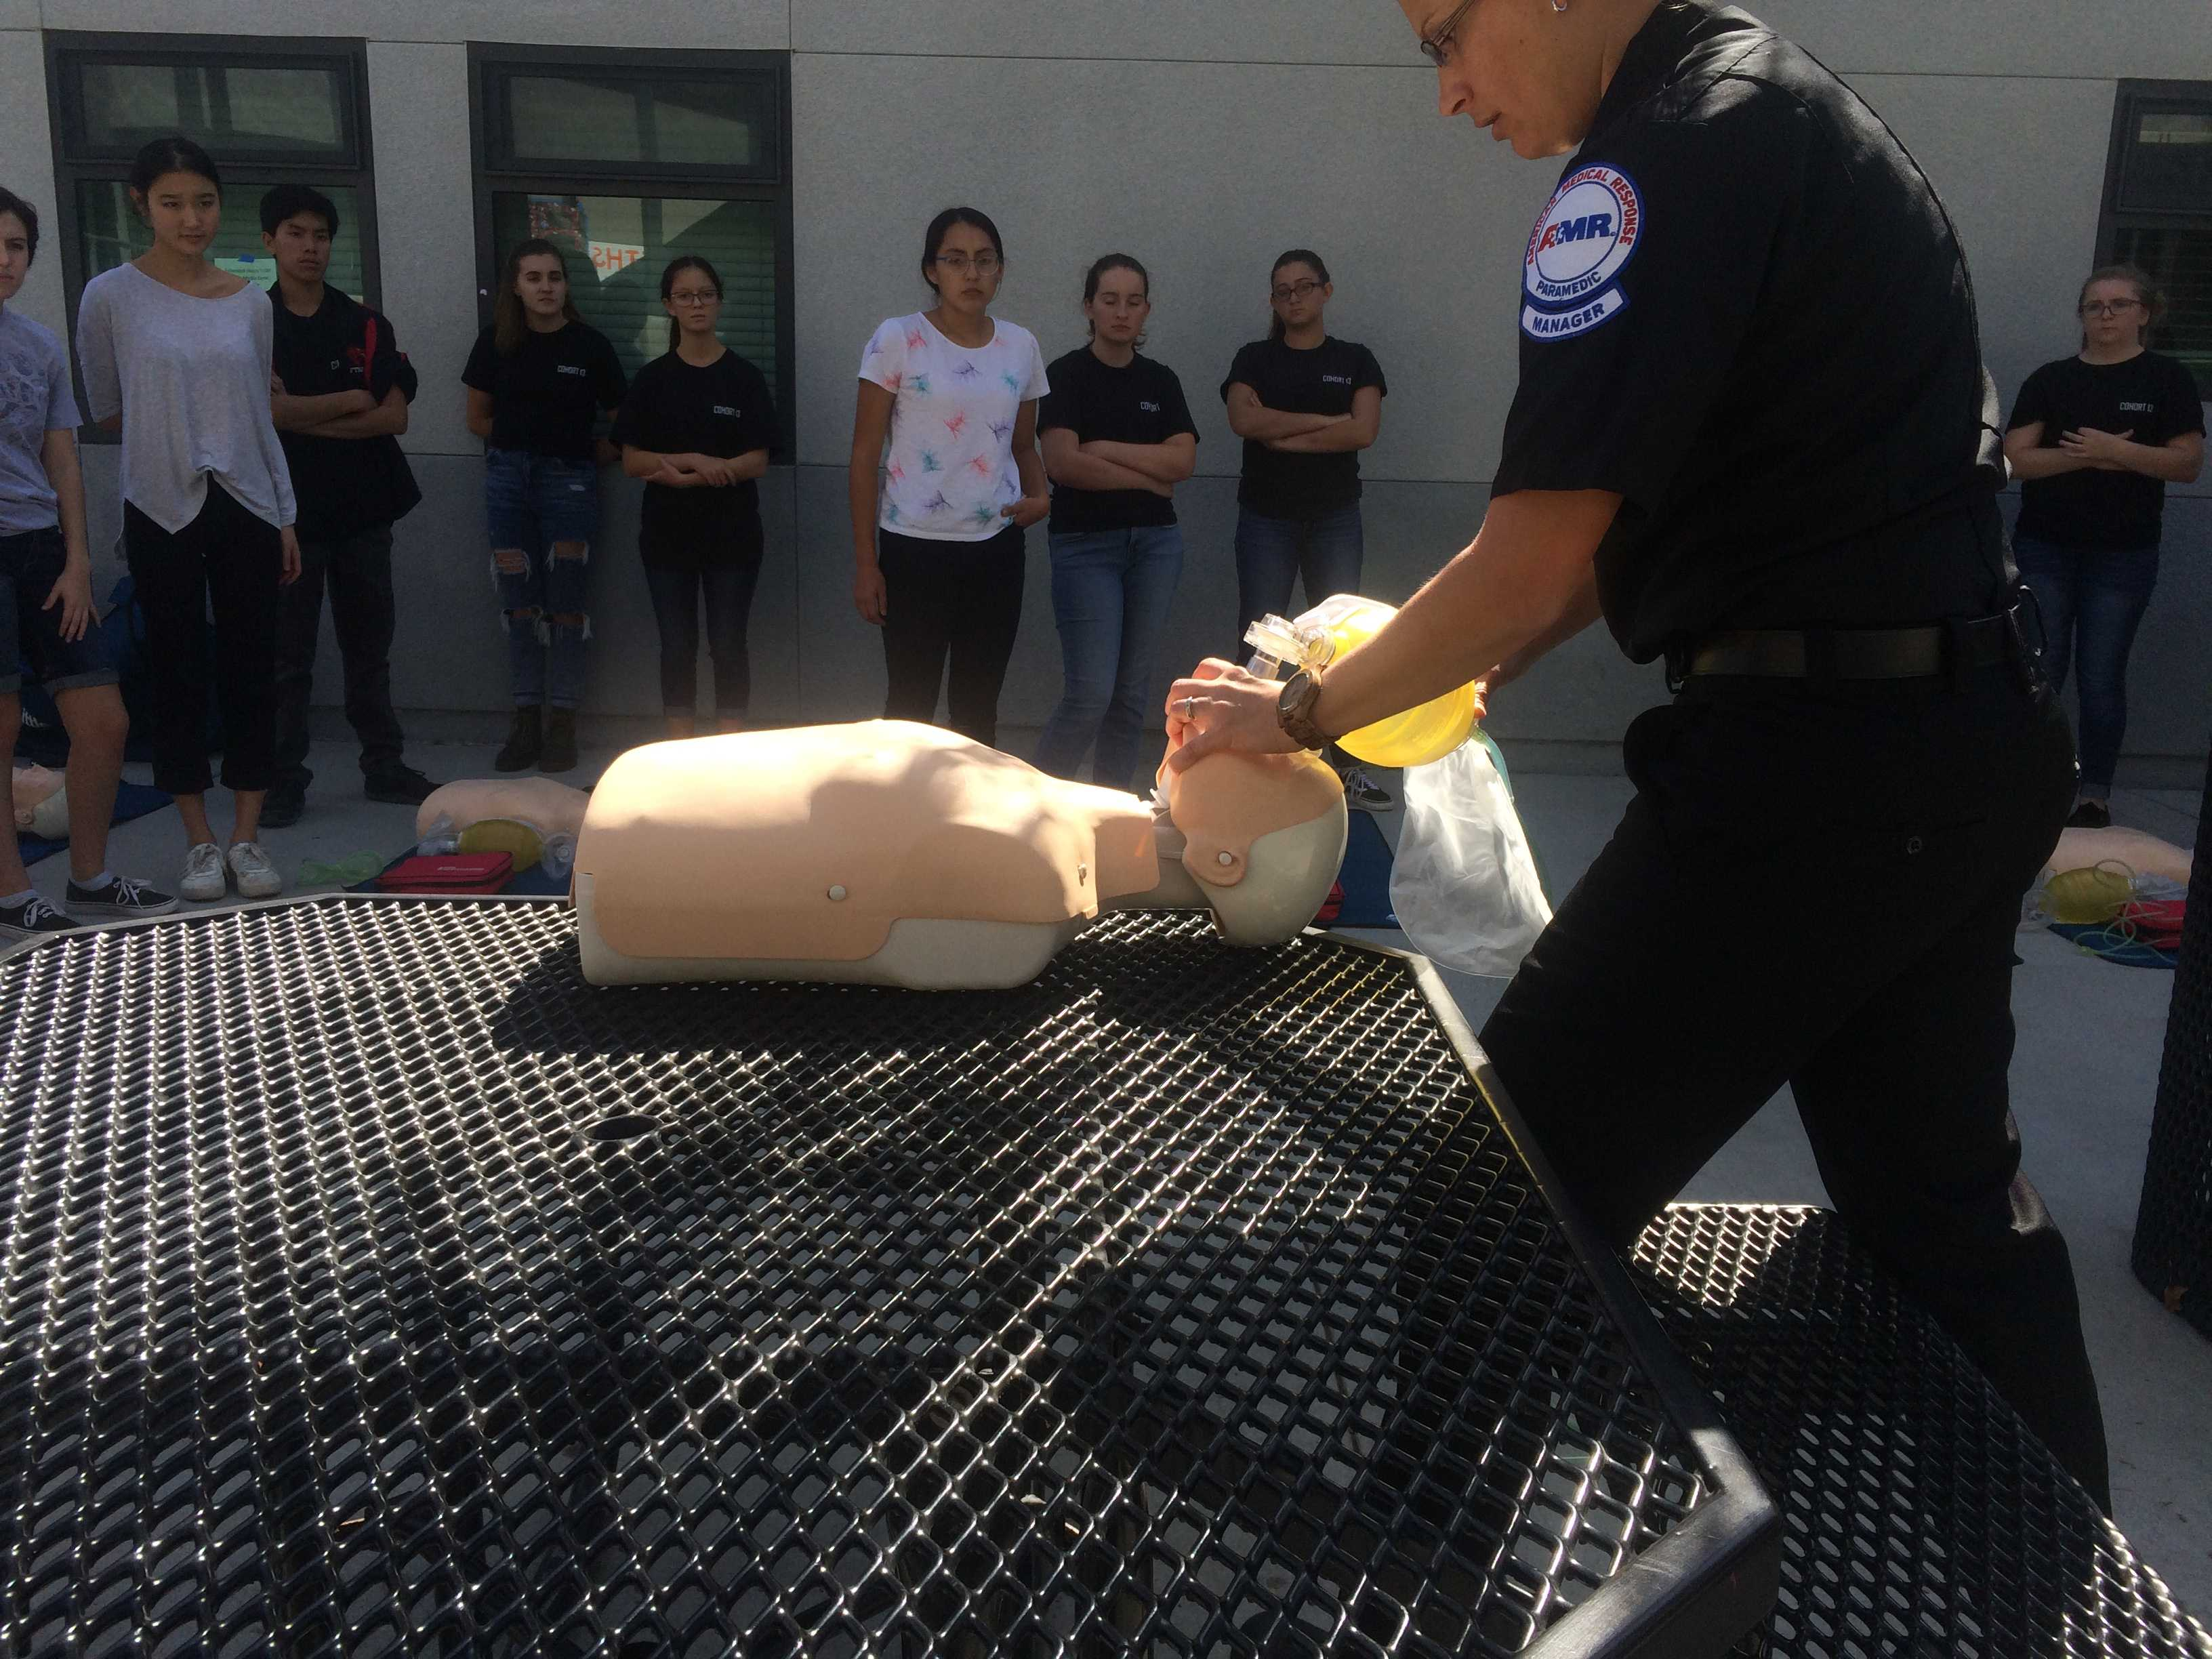 Students observe demonstrations by professionals. Credit: Amazing Oakes / The Foothill Dragon Press